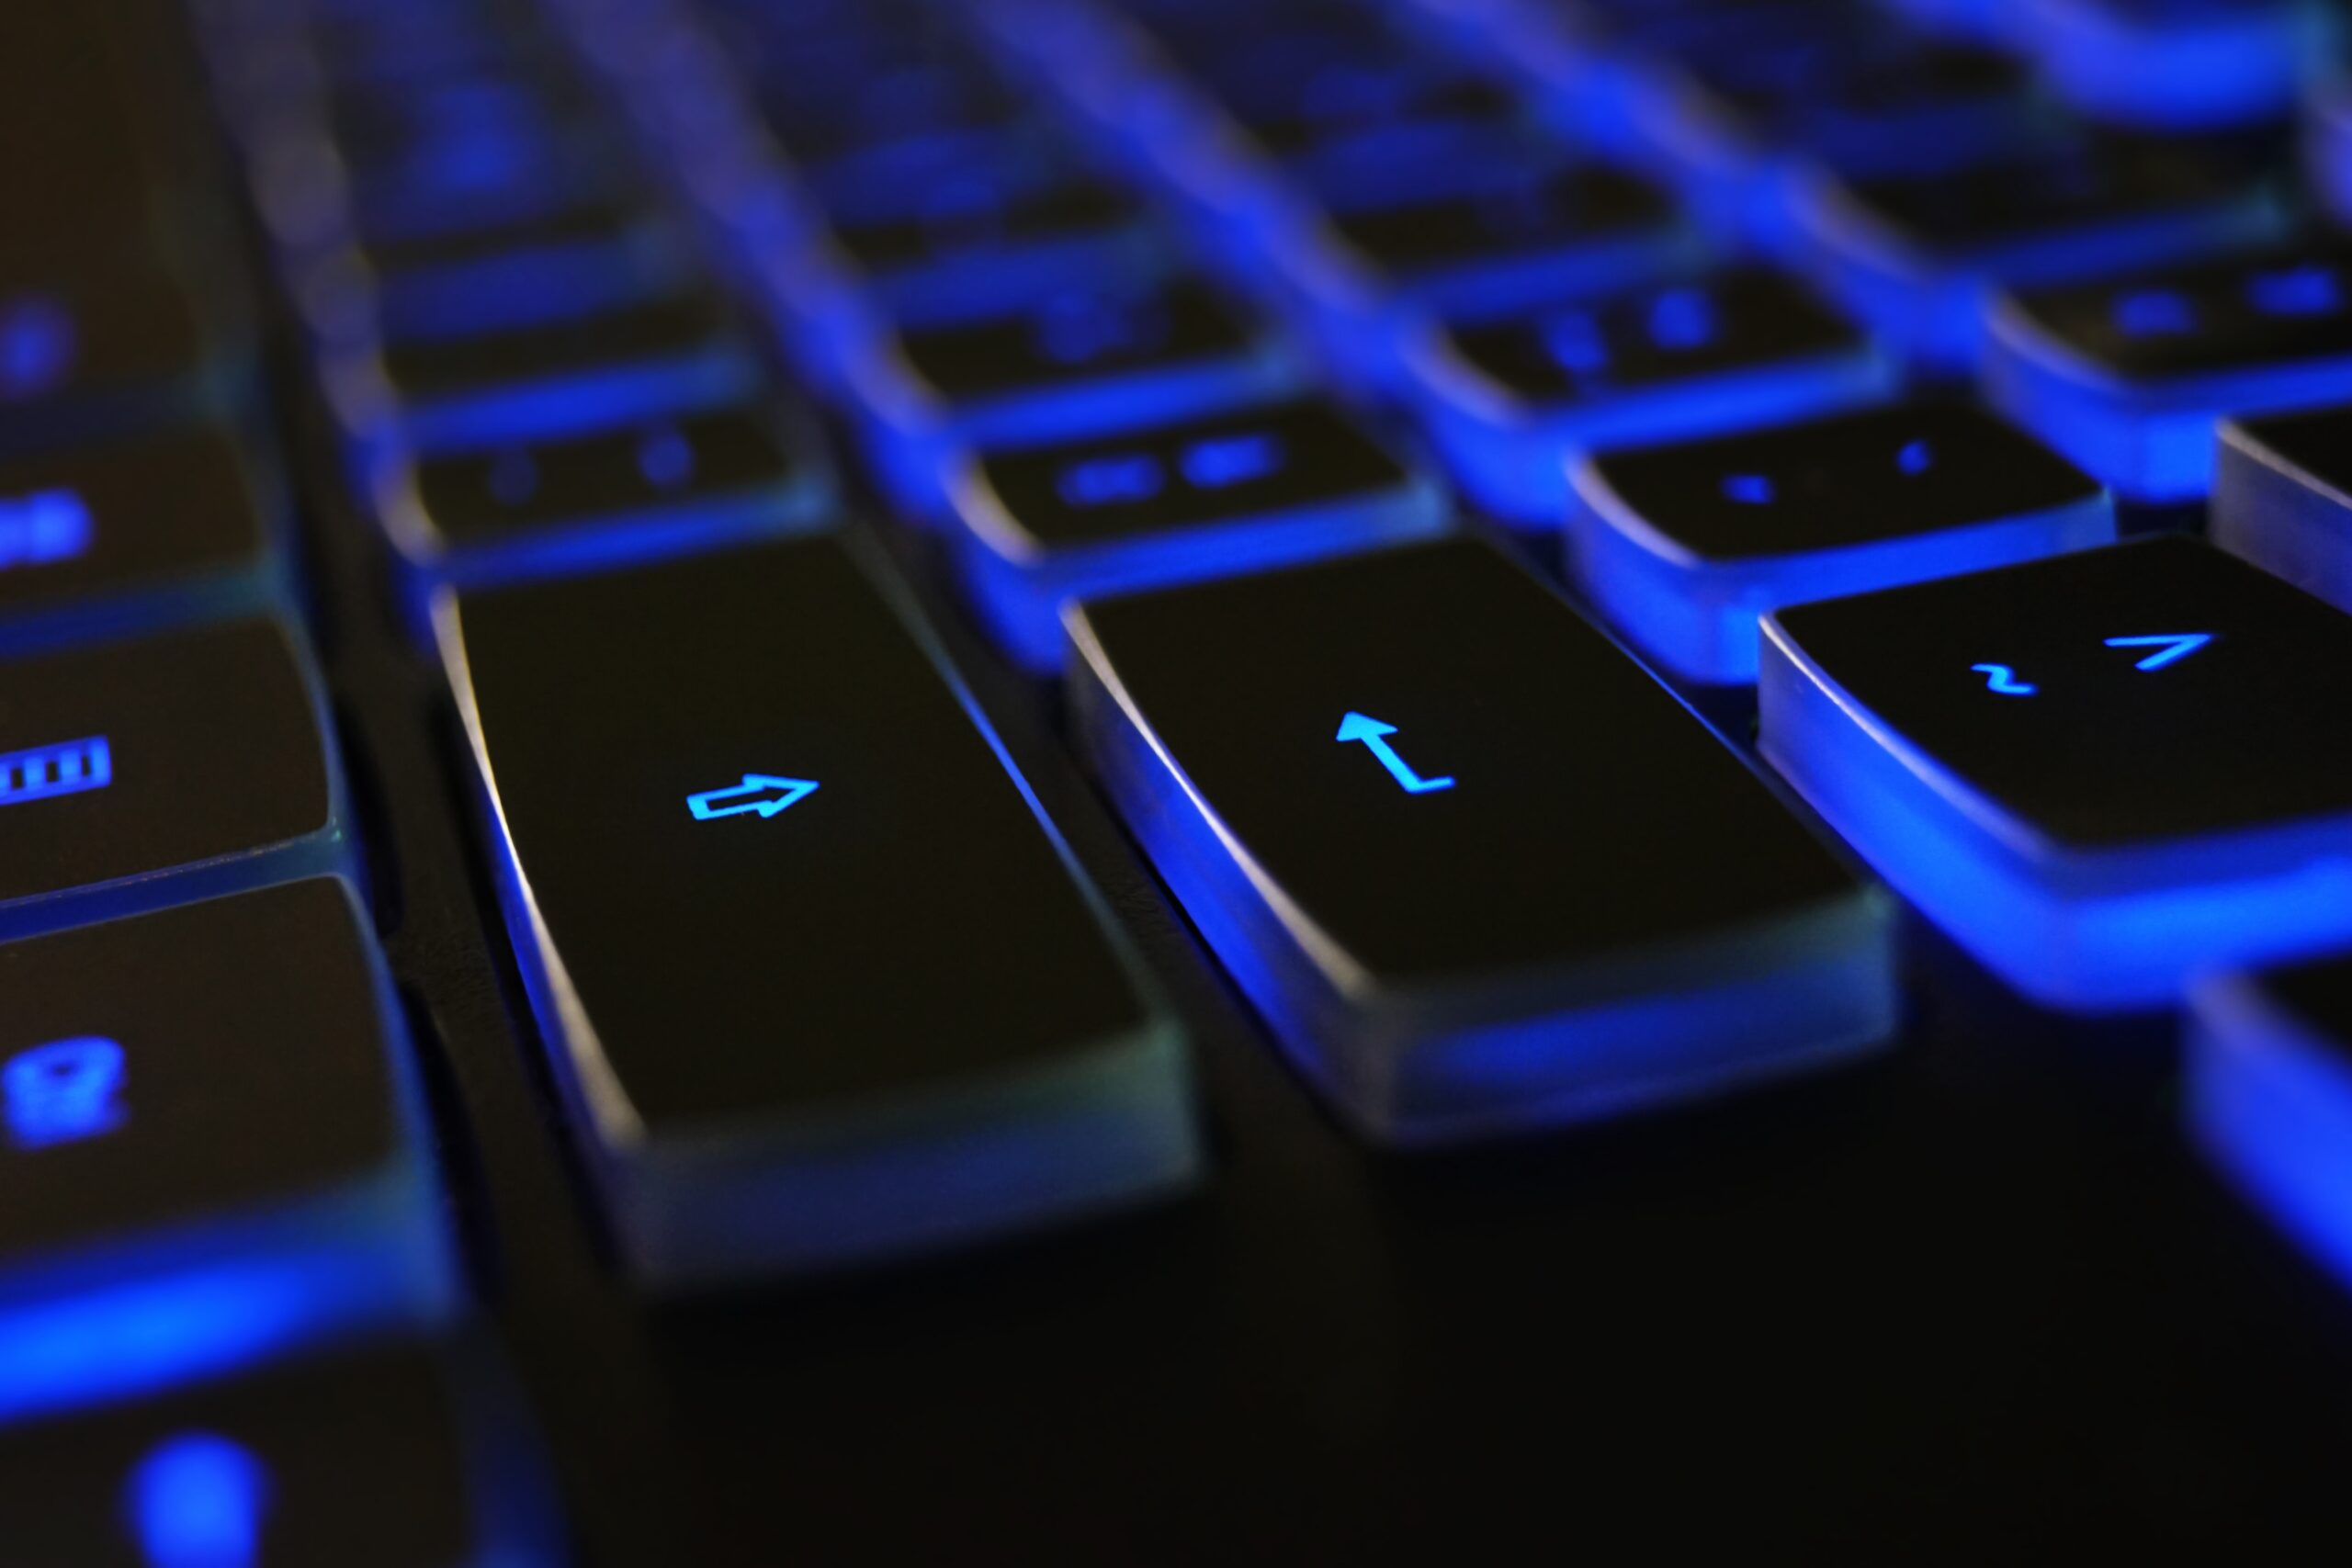 5 Computer Skills To Supercharge Your Employability